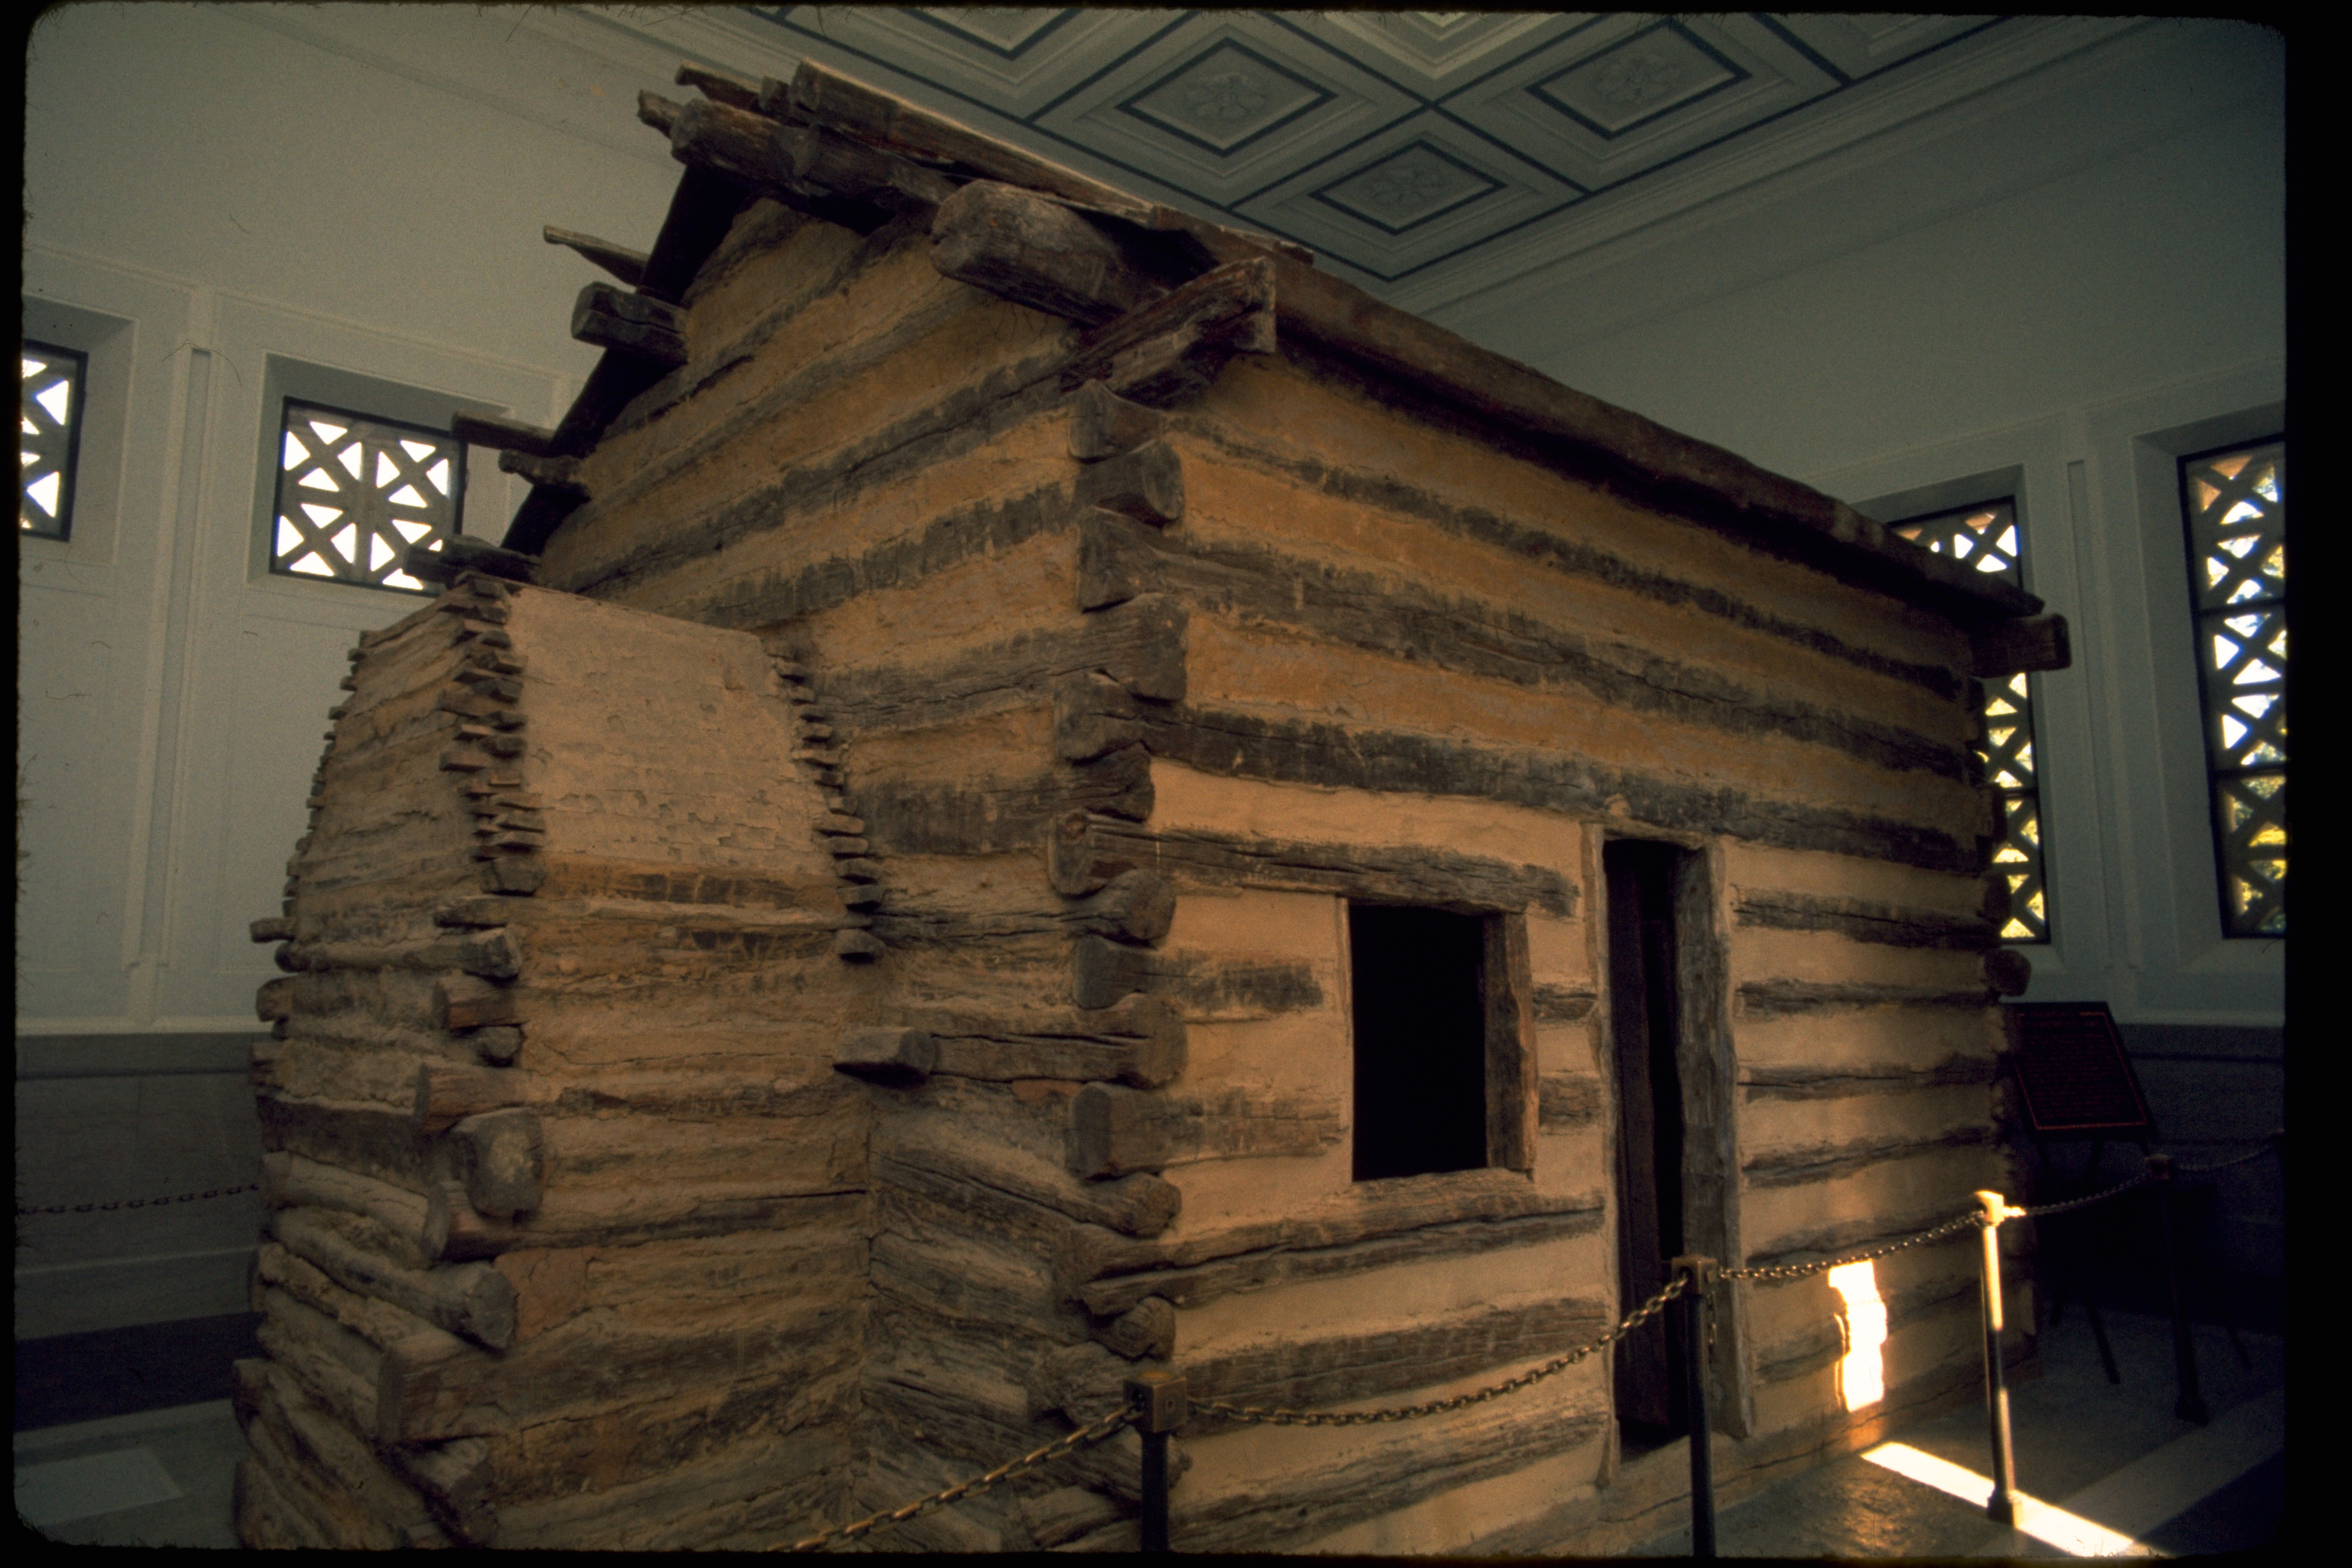 In the fall of 1808, Thomas and Nancy Lincoln settled on Sinking Spring Farm. Two months later on February 12, 1809, Abraham Lincoln was born there in a one-room log cabin. Today this site bears the address of 2995 Lincoln Farm Road, Hodgenville, Kentucky. A cabin, symbolic of the one in which Lincoln was born, is preserved within a 1911 memorial building at the site. The Memorial Building features 16 windows, 16 rosettes on the ceiling, and 16 fence poles, representing Lincoln being the 16th president. The 56 steps leading up to the building entrance represent his age at his death. The original log cabin that Lincoln was reputed to have been born in was dismantled sometime before 1865. Local tradition held that some of the logs from the cabin were used in construction of a nearby house.